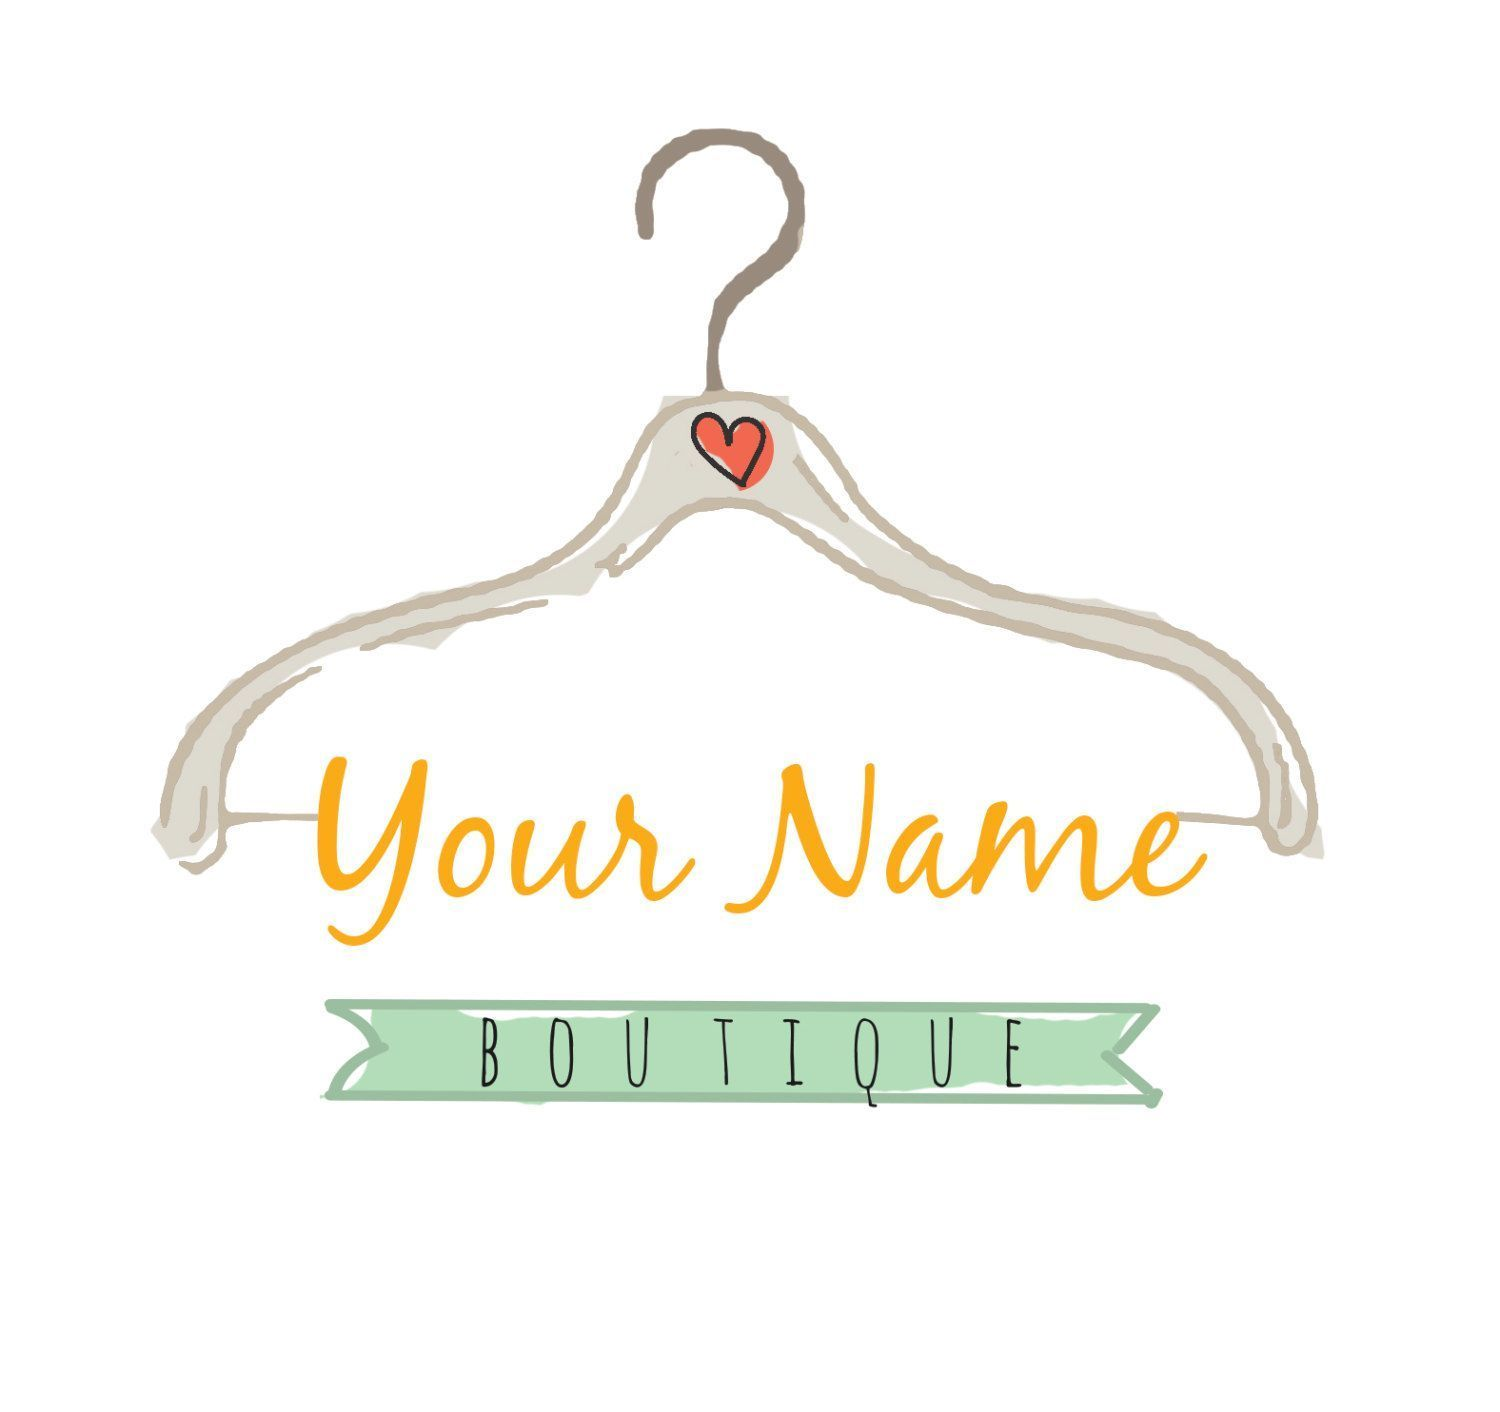 Clotheslogo Embroidery Clothing Boutique Clothes Premade Fashion Hanger Design Drawn Name Lo Clothing Logo Fashion Design Logo Clothing Sewing Logo